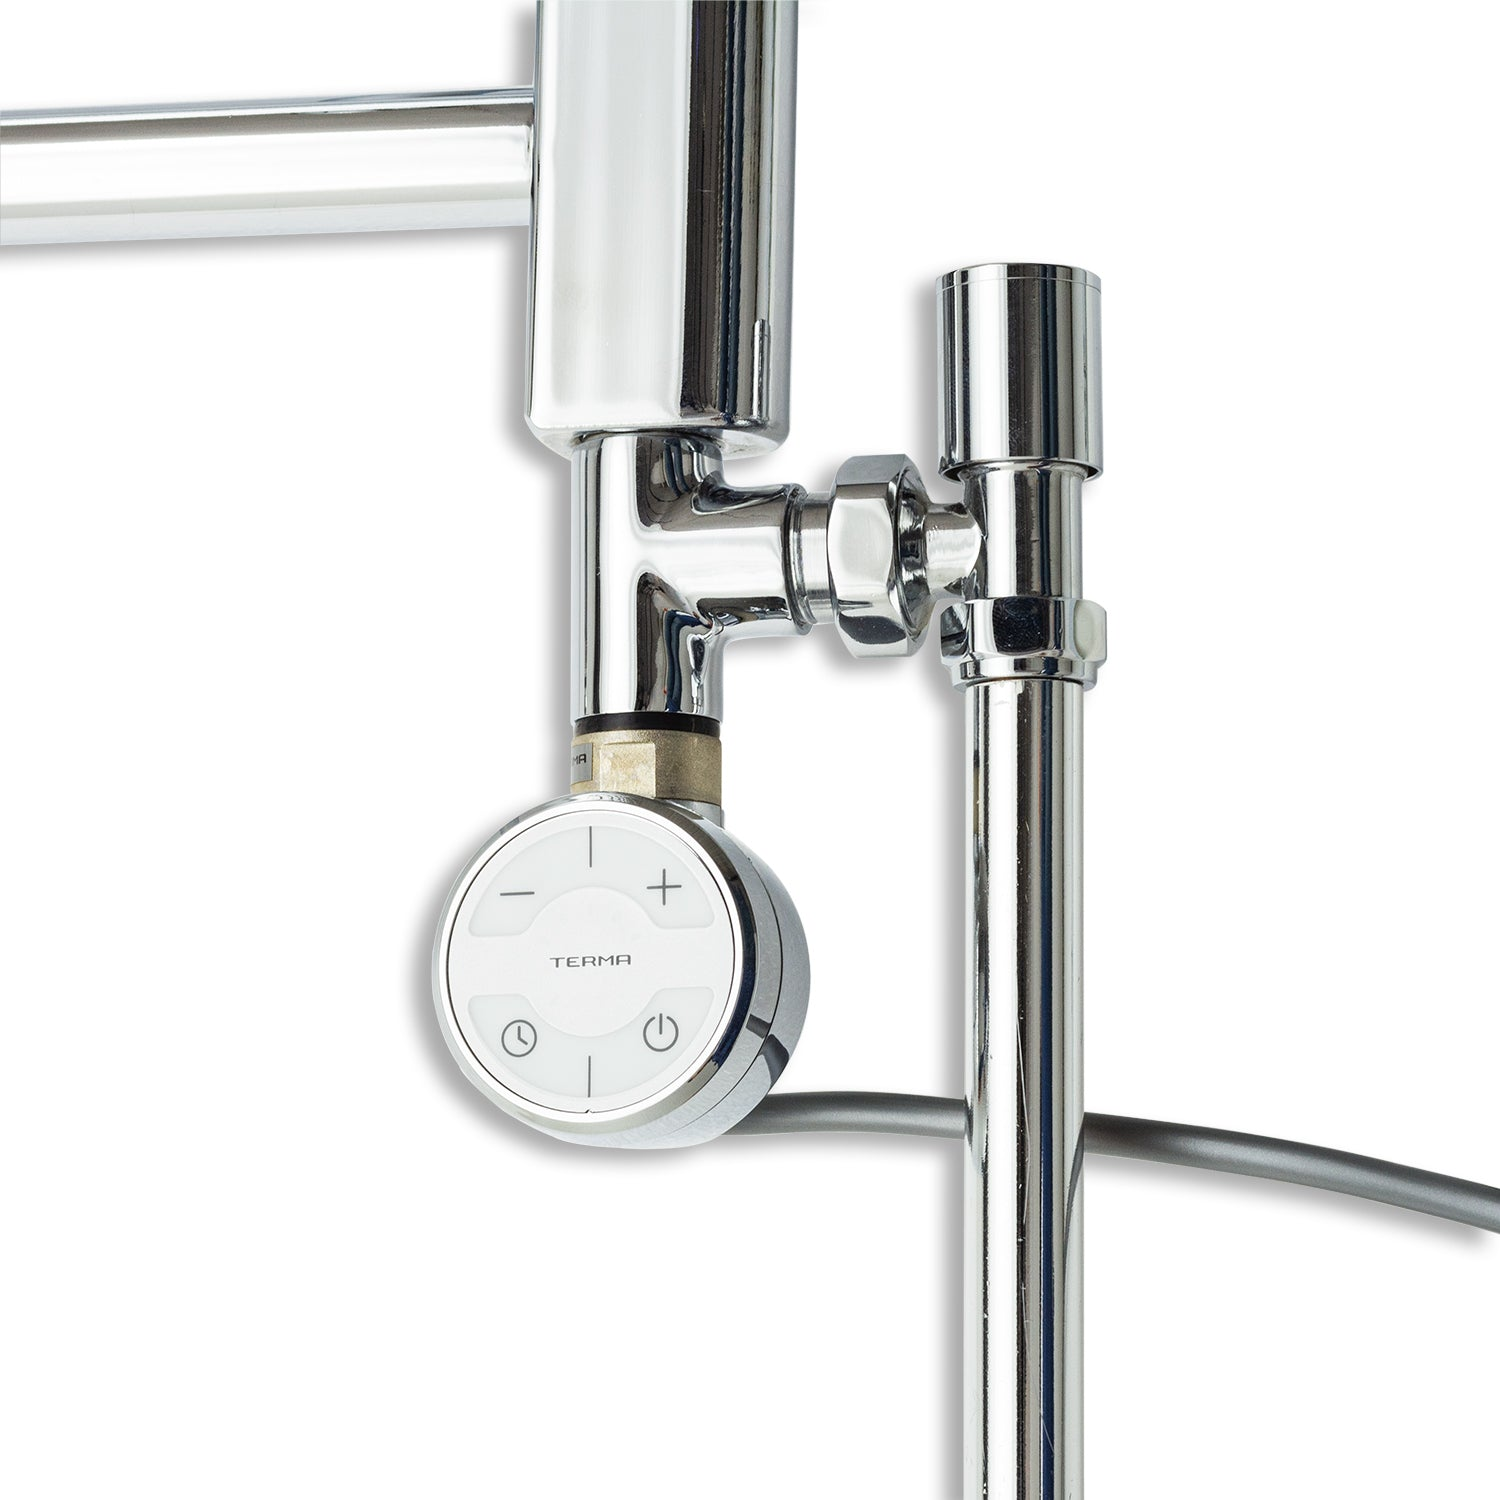 Moa thermostatic element dual fuel kit for towel rail in chrome